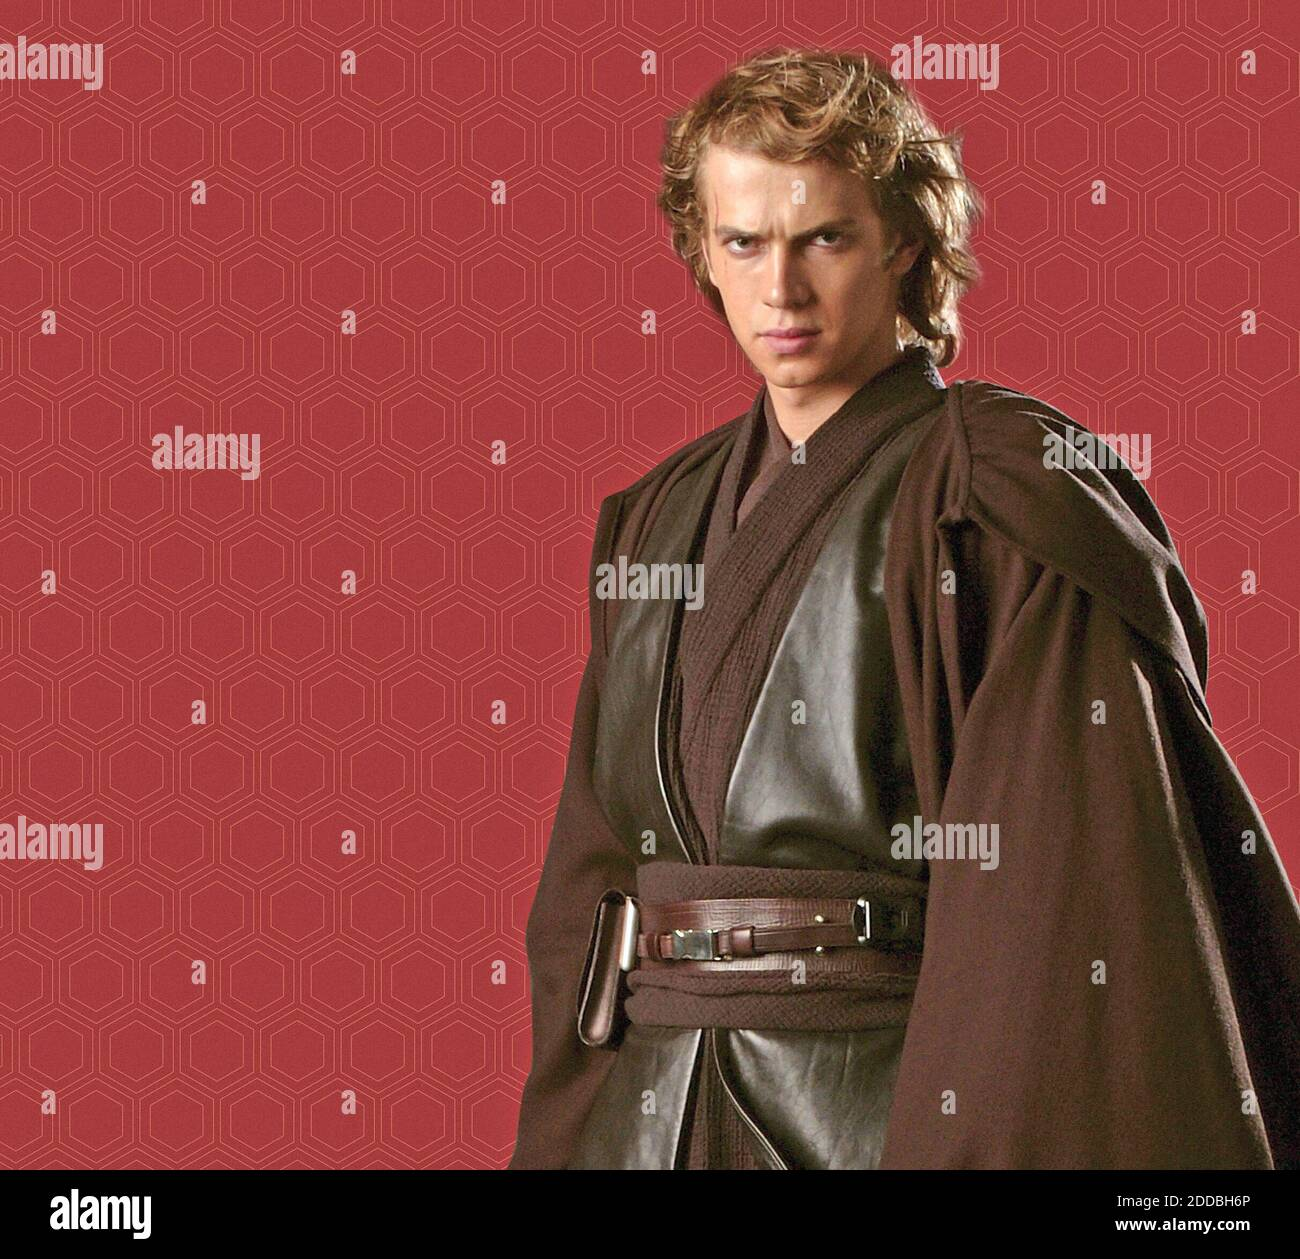 KEIN FILM, KEIN VIDEO, KEIN TV, KEIN DOKUMENTARFILM - Anakin Skywalker (Hayden Christensen) in einer Jedi-Standardtunika. Die dunkle Farbe drückt in Star Wars seine Unabhängigkeit vom Jedi-Rat aus. Foto von KRT/ABACAPRESS.COM Stockfoto